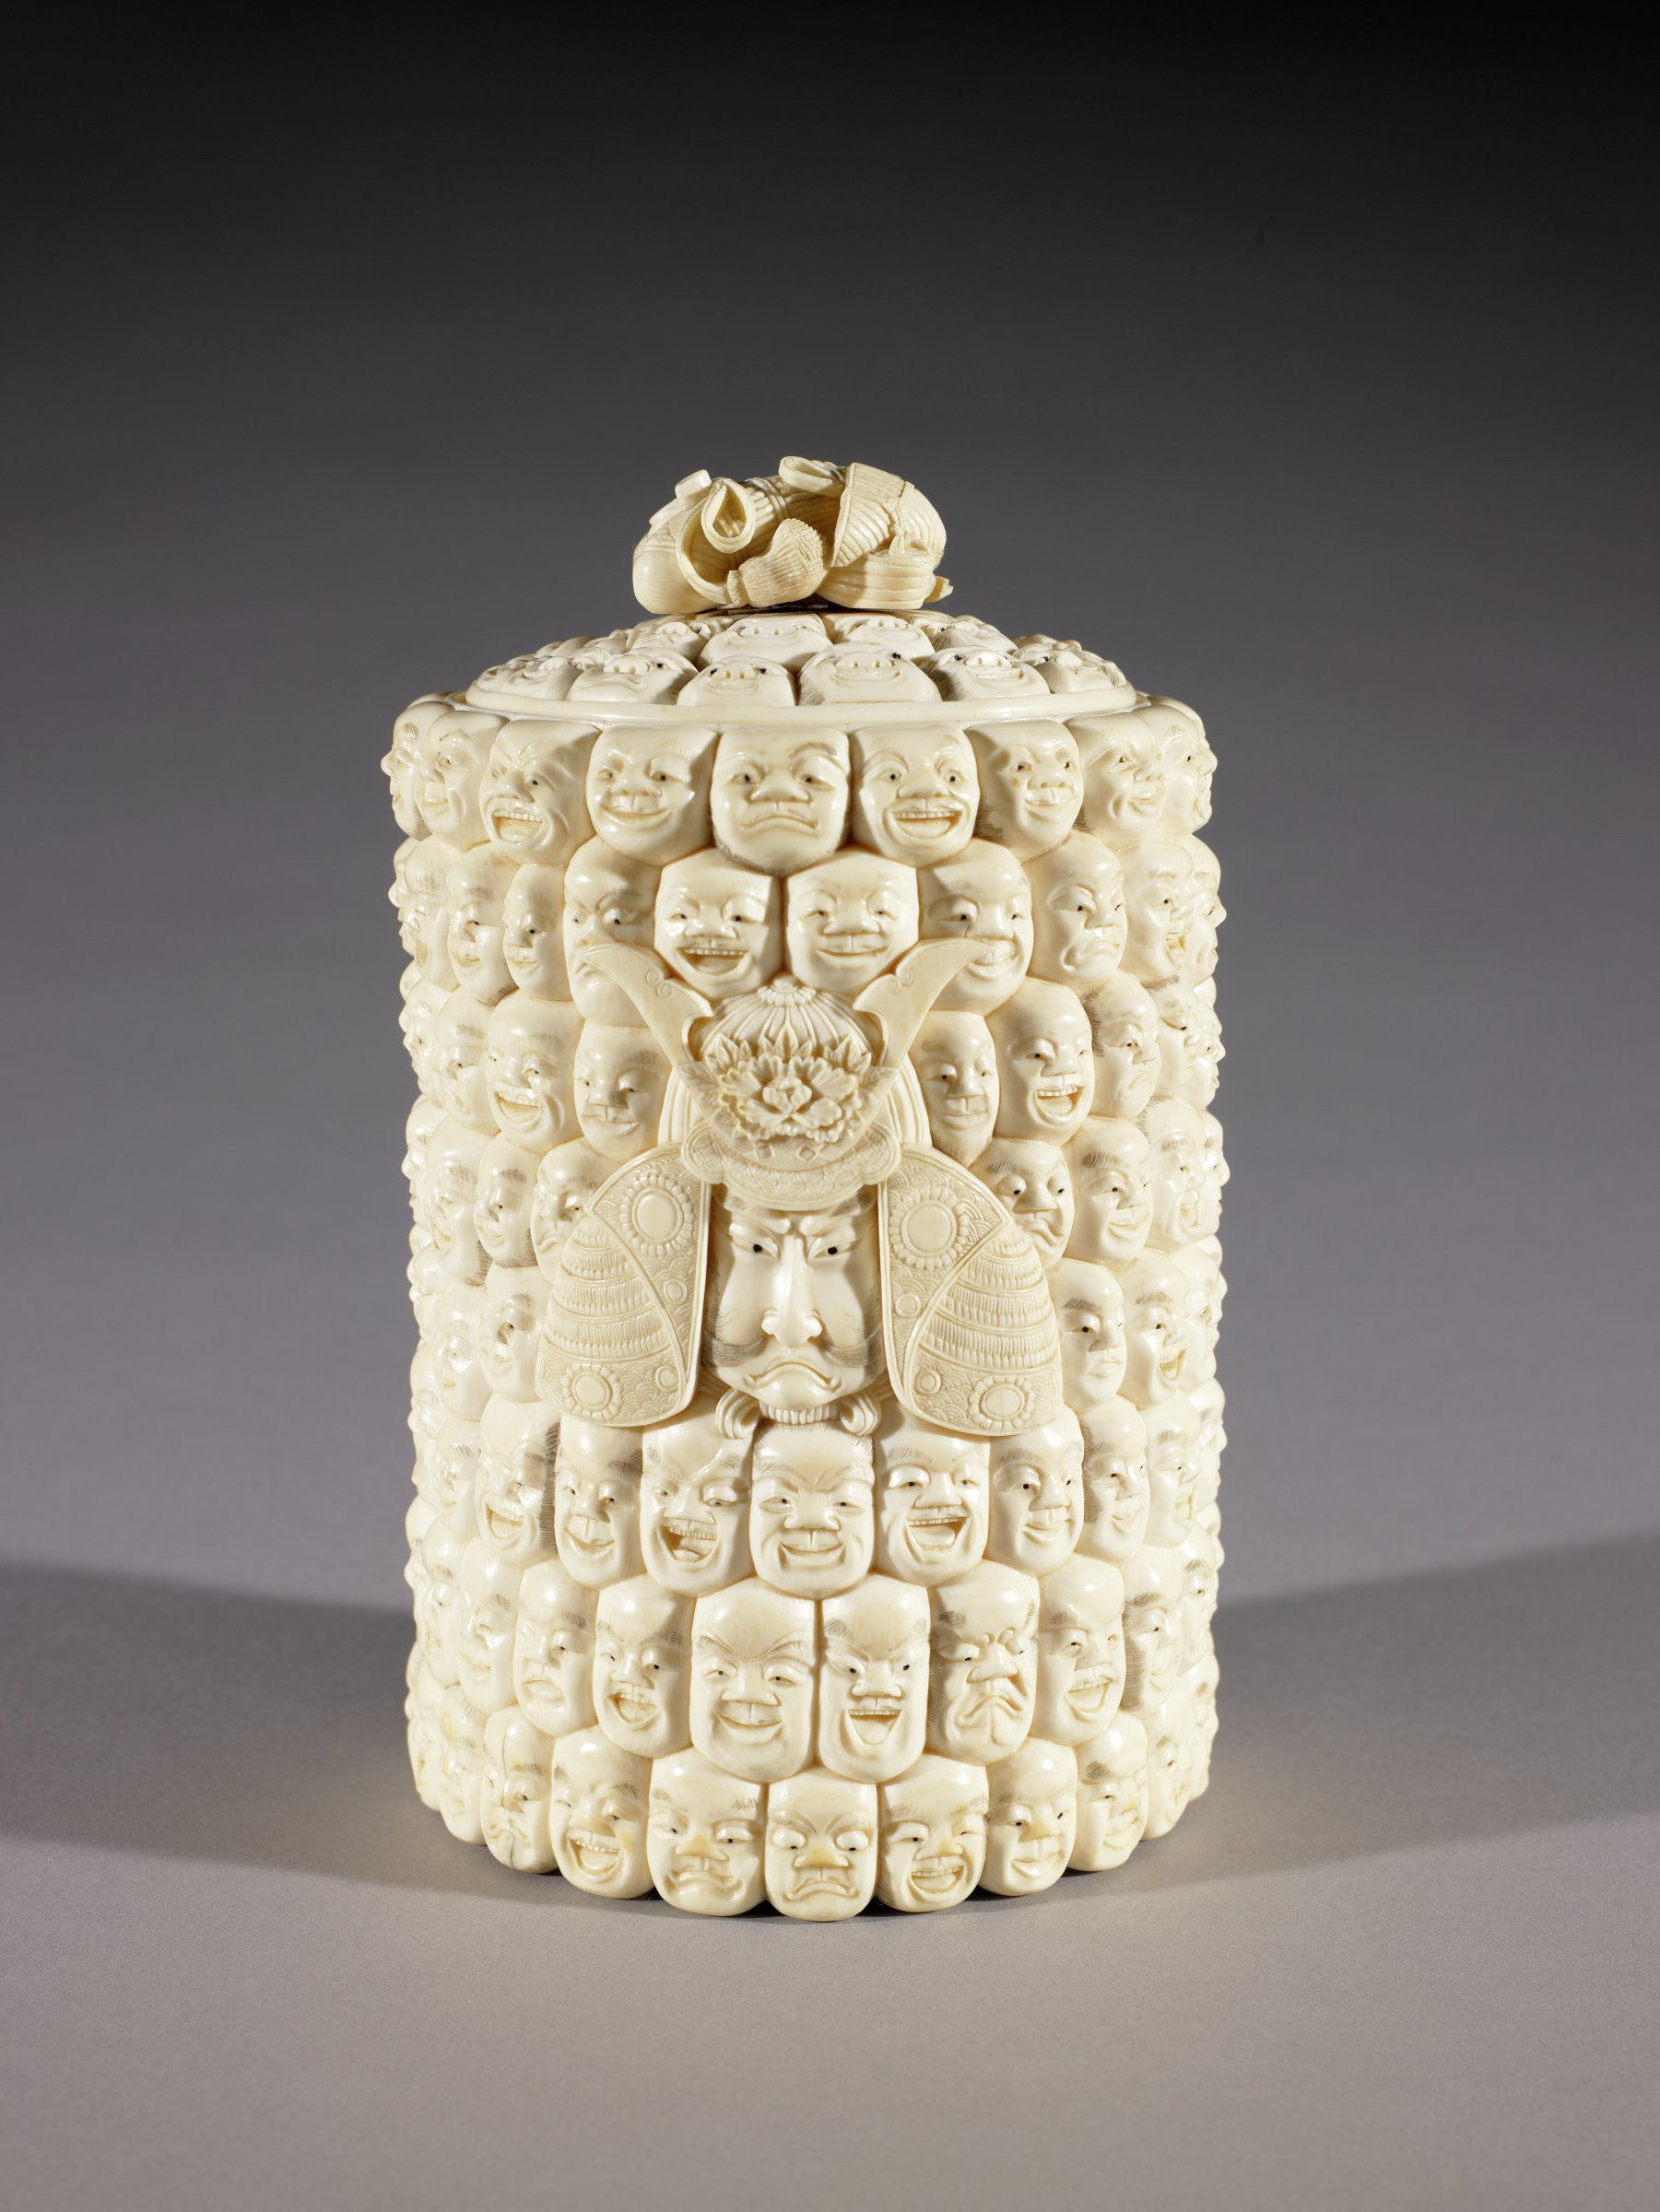 Lidded Box carved from an ivory tusk with one hundred faces featuring one larger dominant head wearing a helmet (Kabuto)